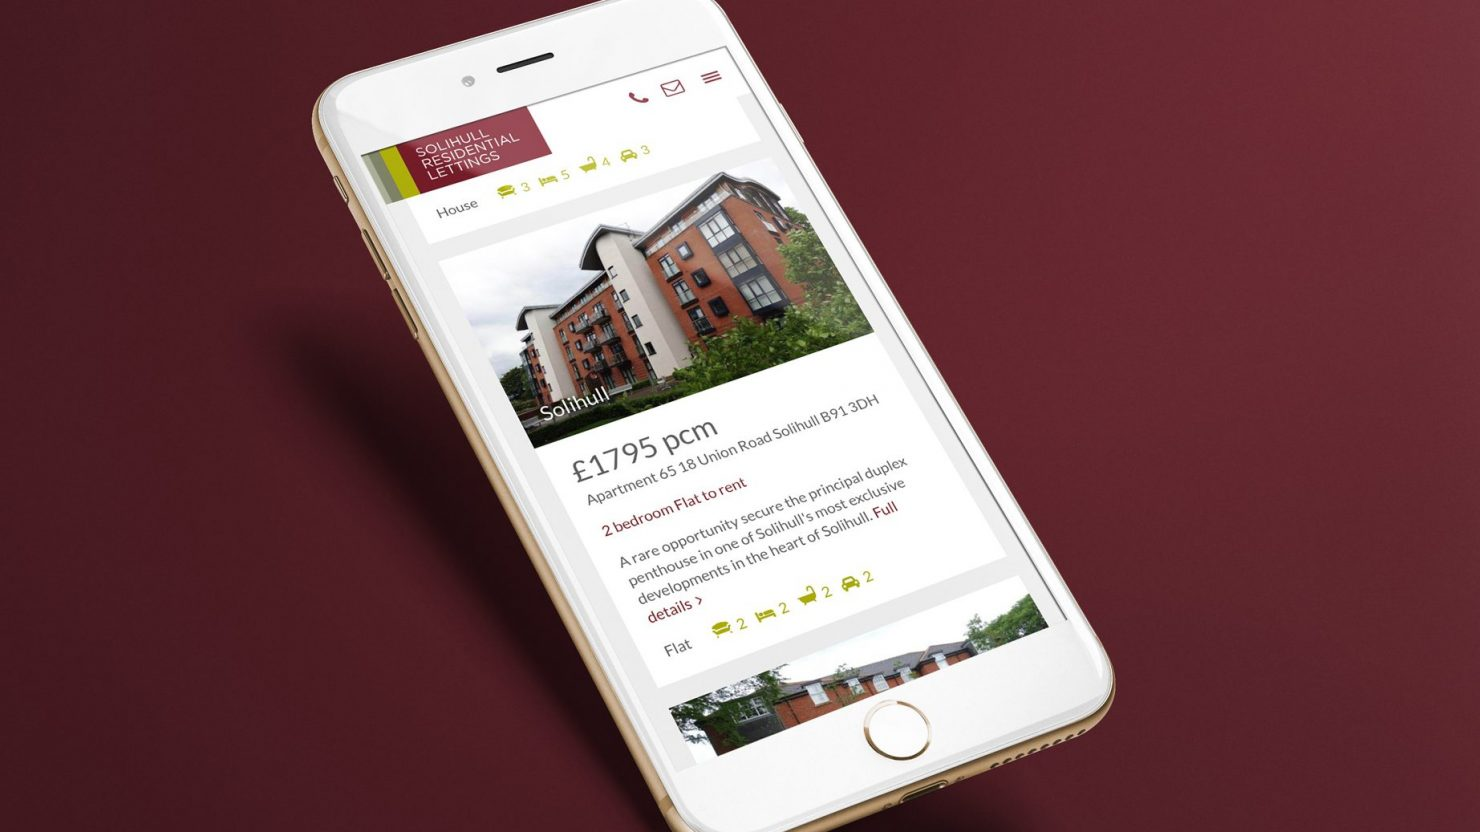 iPhone showing website design and branding for Solihull Residential Lettings